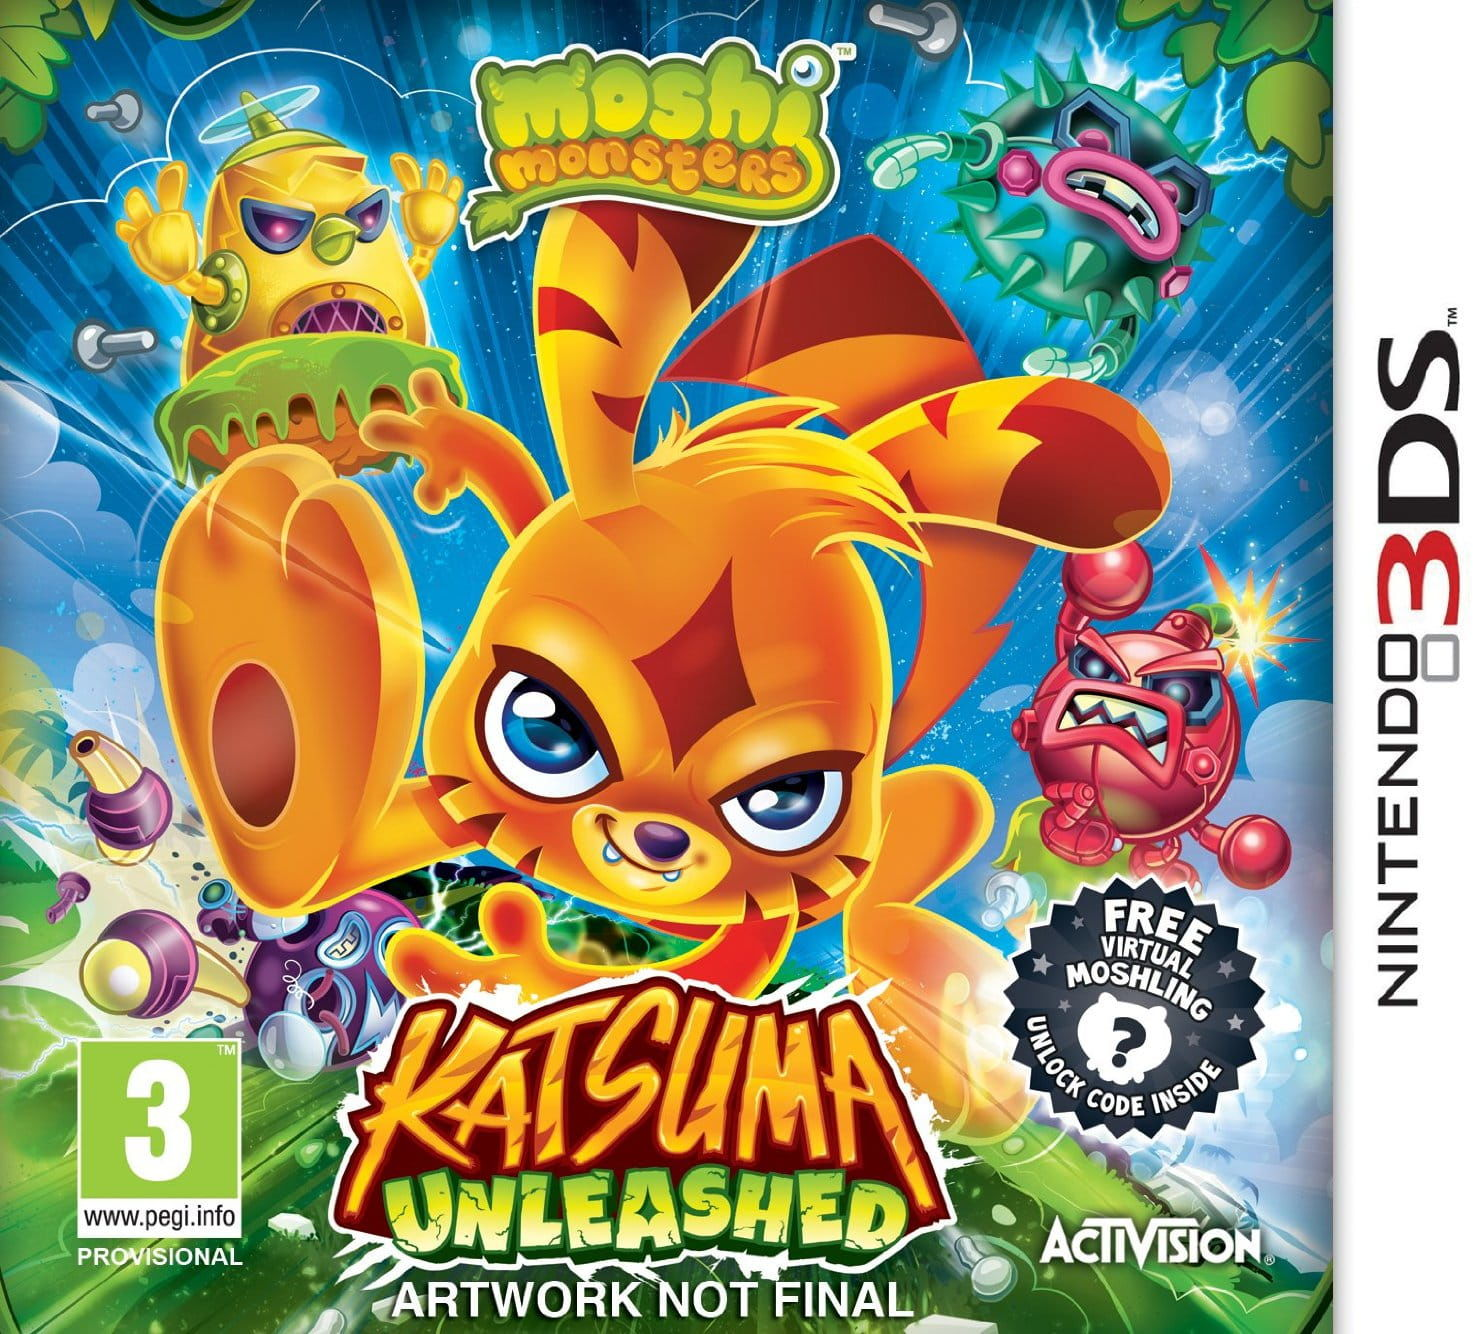 Gra Moshi Monsters: Katsuma Unleashed (Nintendo 3DS)